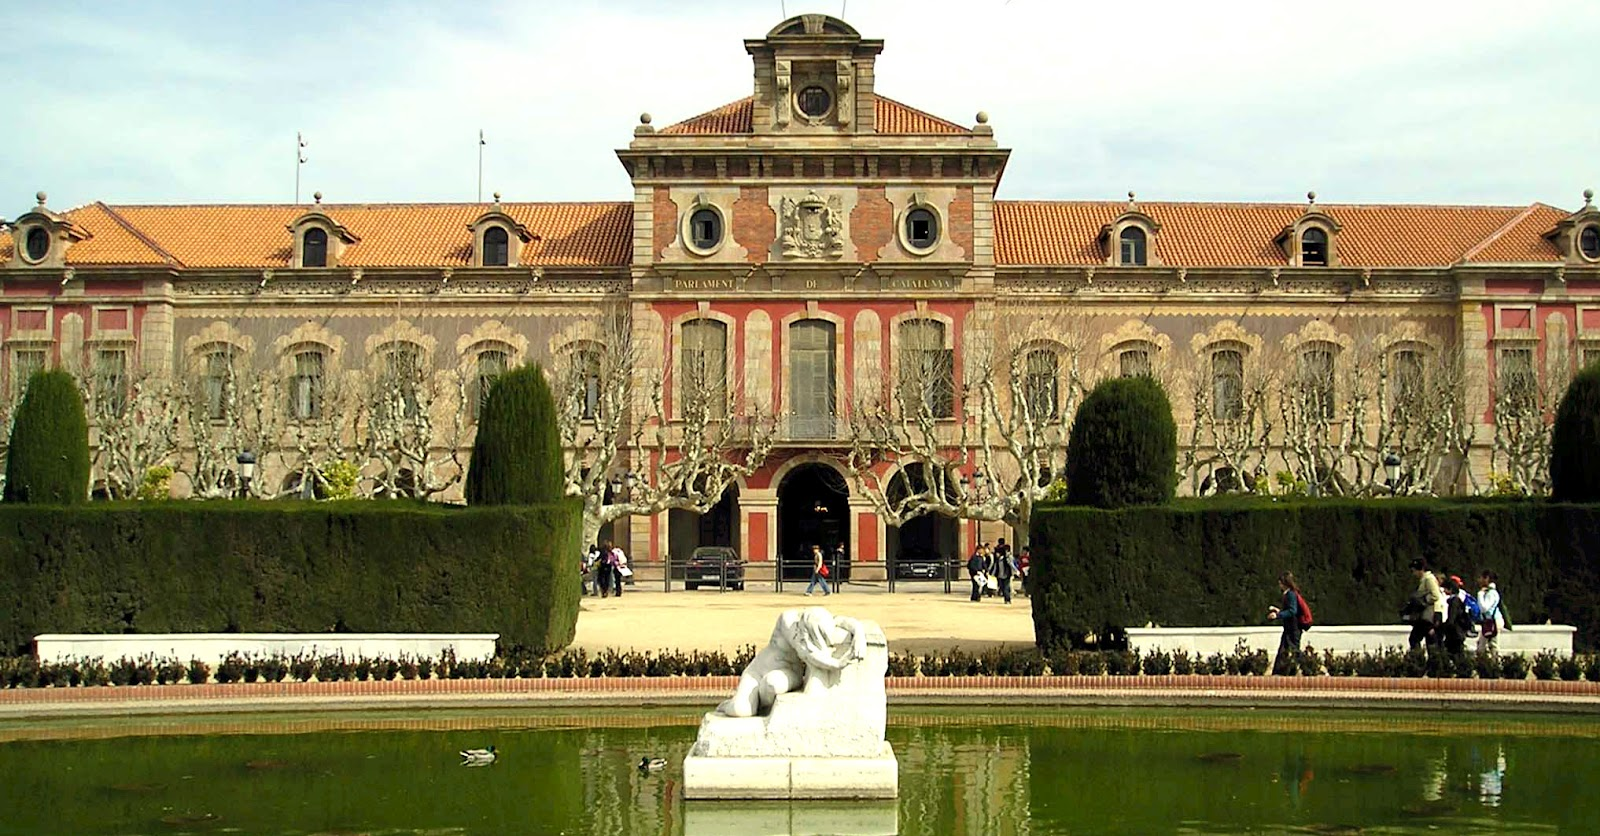 Top 6 Parks in Barcelona - Parliament of Catalonia in Parc de la Ciutadella